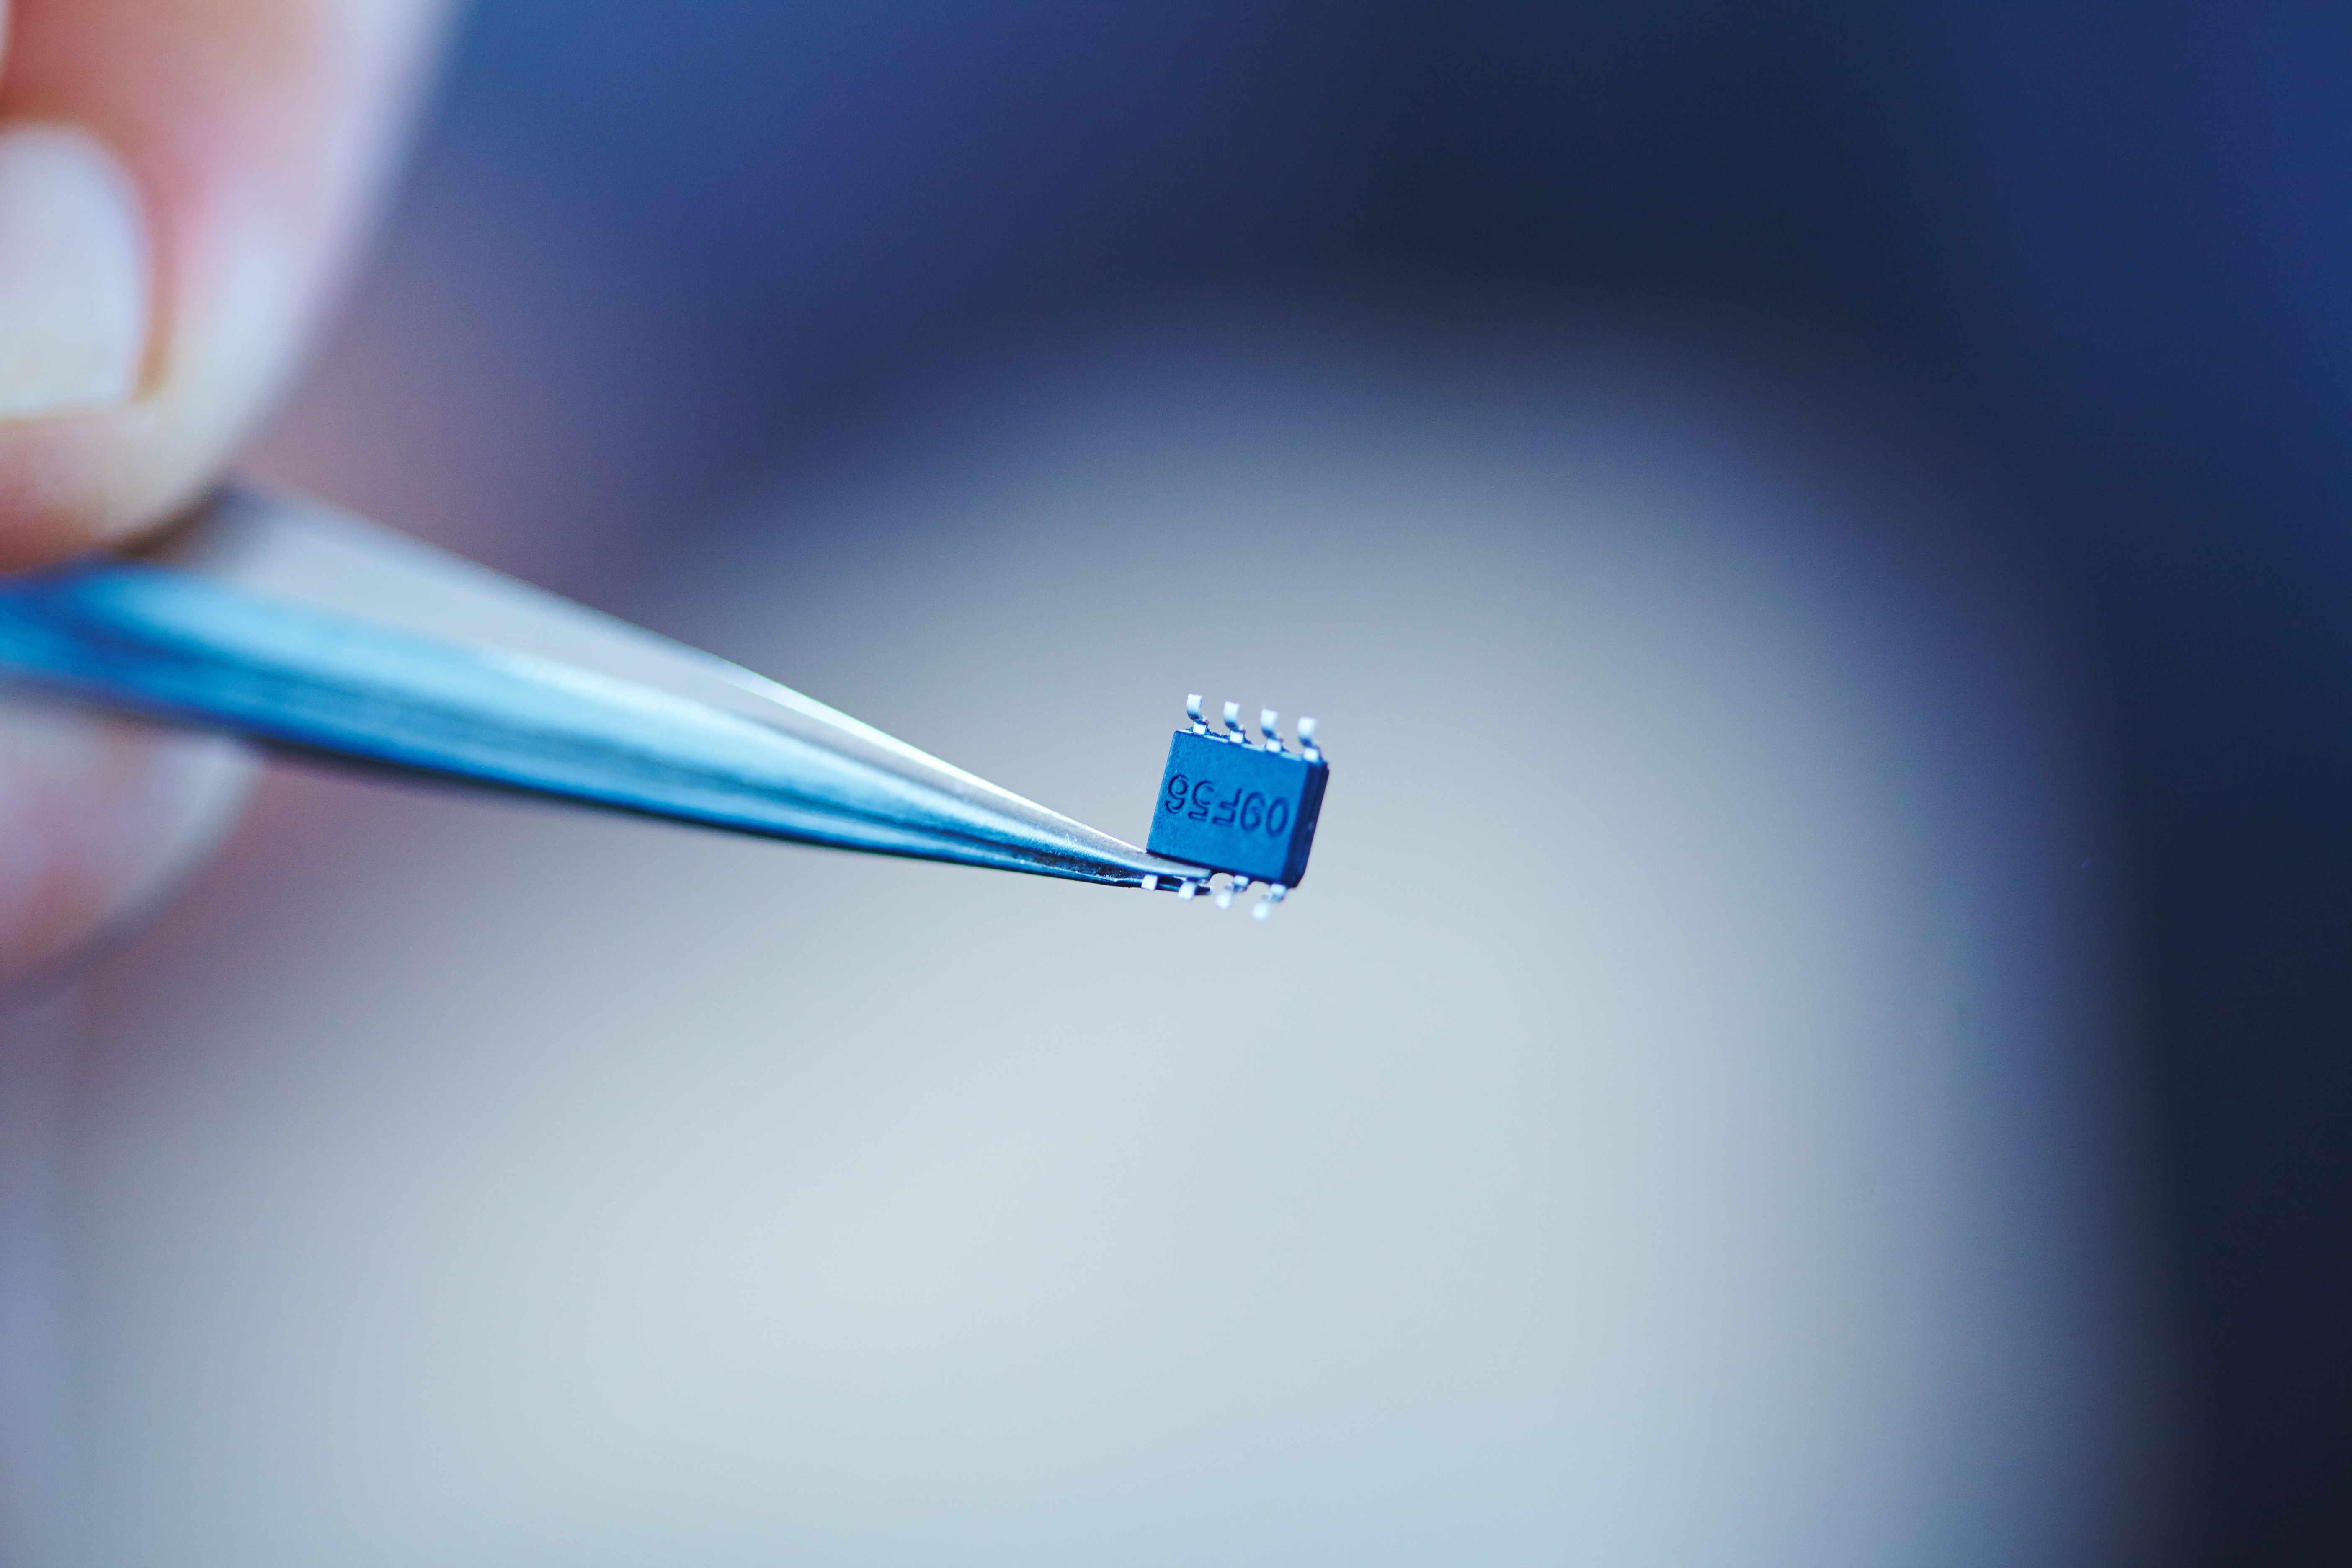 New Microchip Technology Could Track 'Smart Pills' - NI